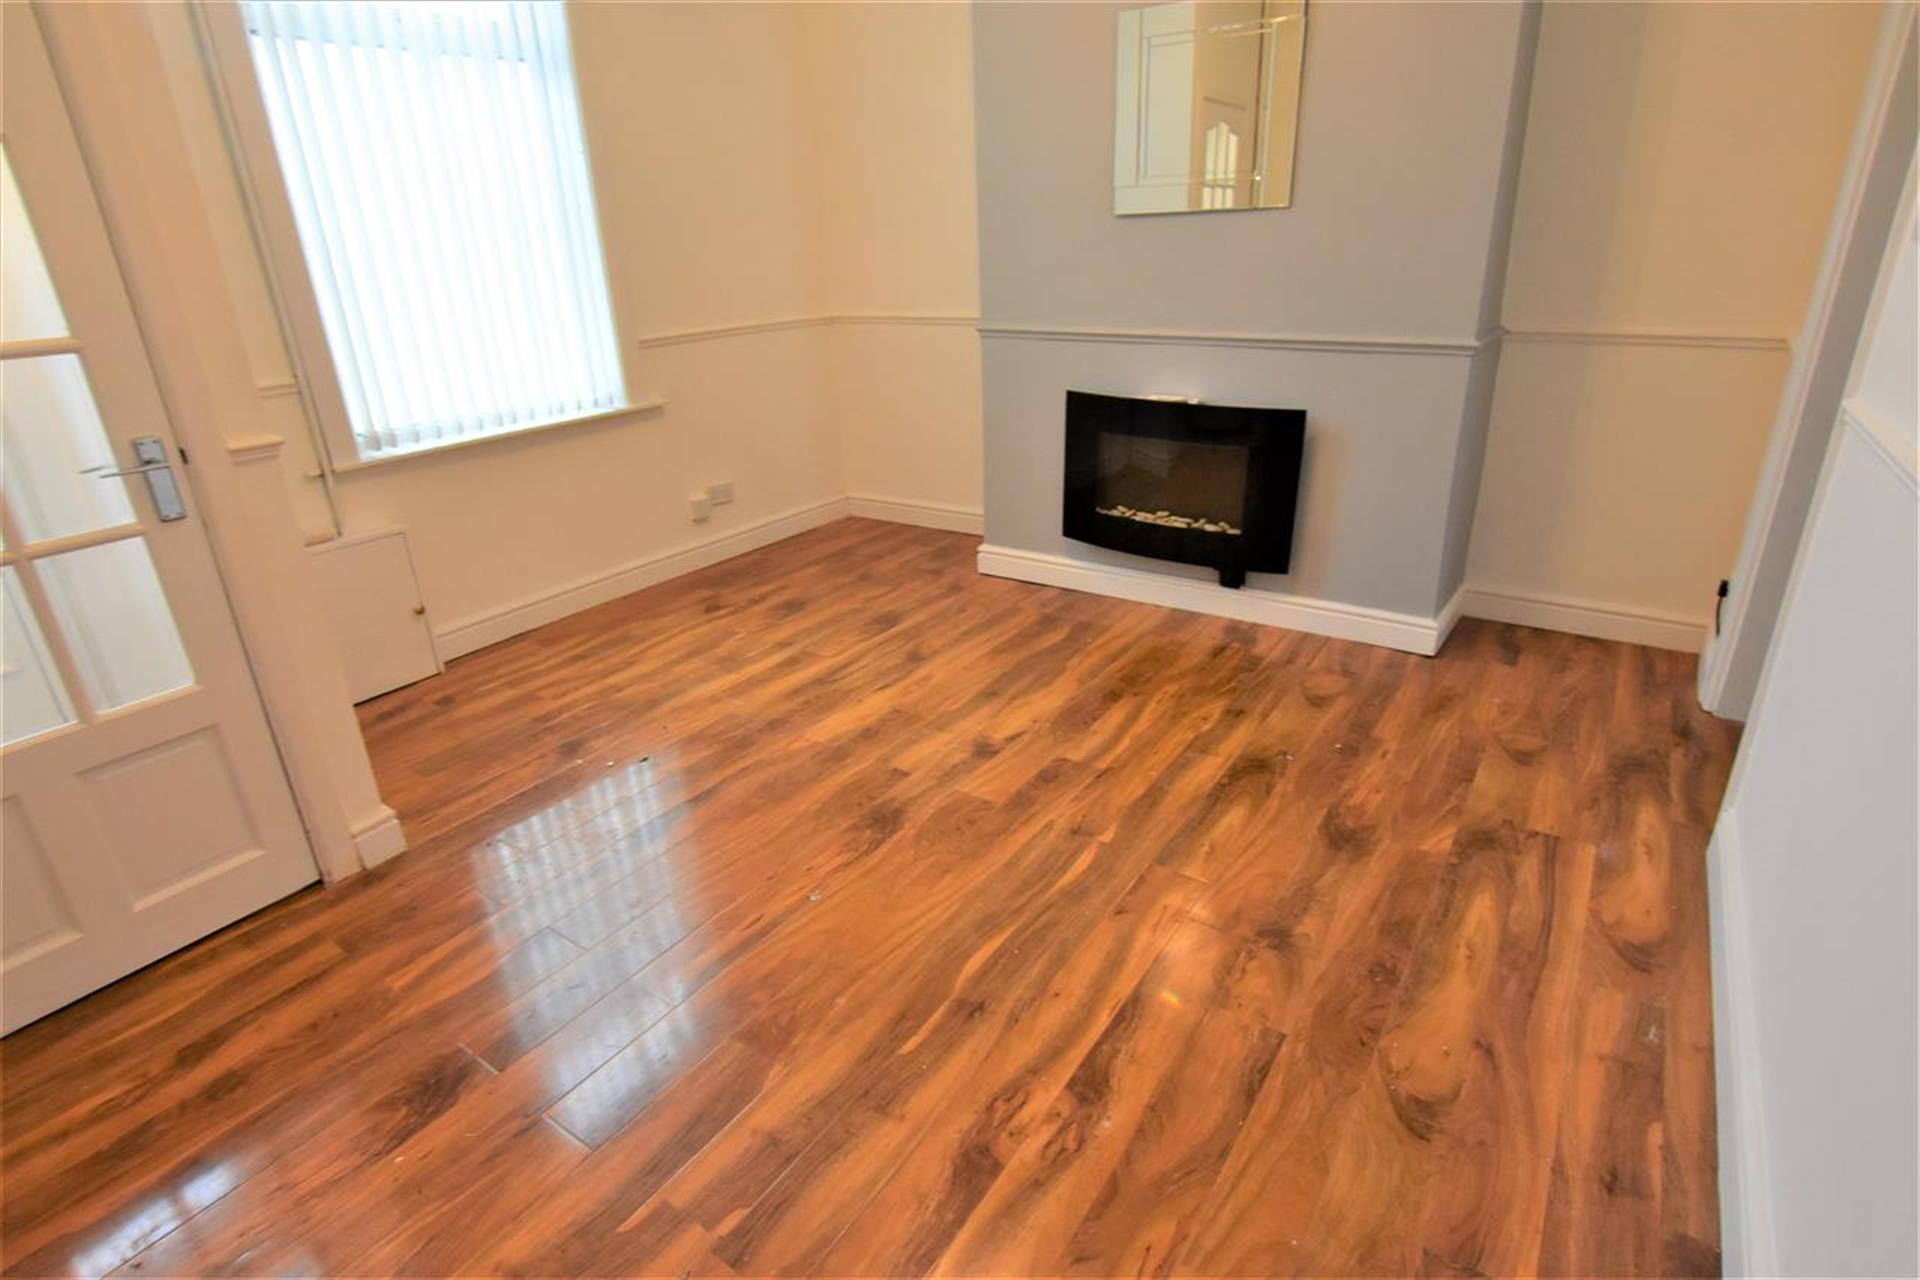 2 Bedroom Terraced House For Sale - Front Reception Room